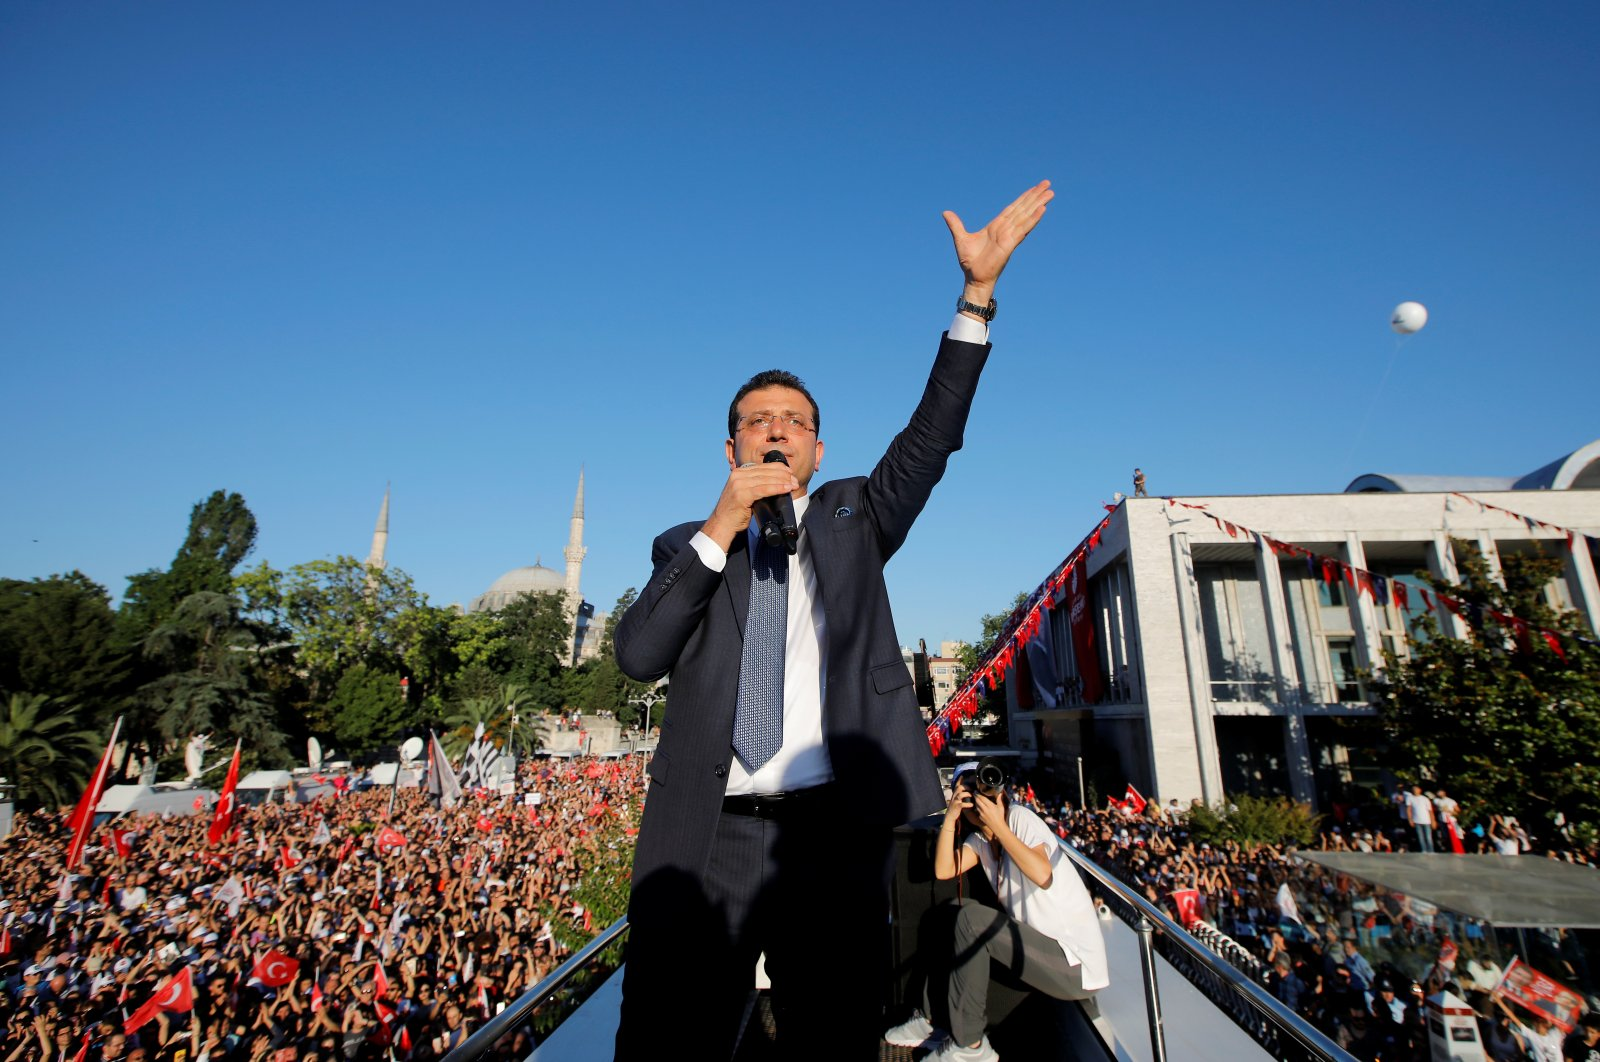 Istanbul Mayor Ekrem Imamoğlu of the main opposition Republican People's Party (CHP) addresses his supporters from the top of a bus outside City Hall in Istanbul, Turkey, June 27, 2019. (Reuters File Photo)